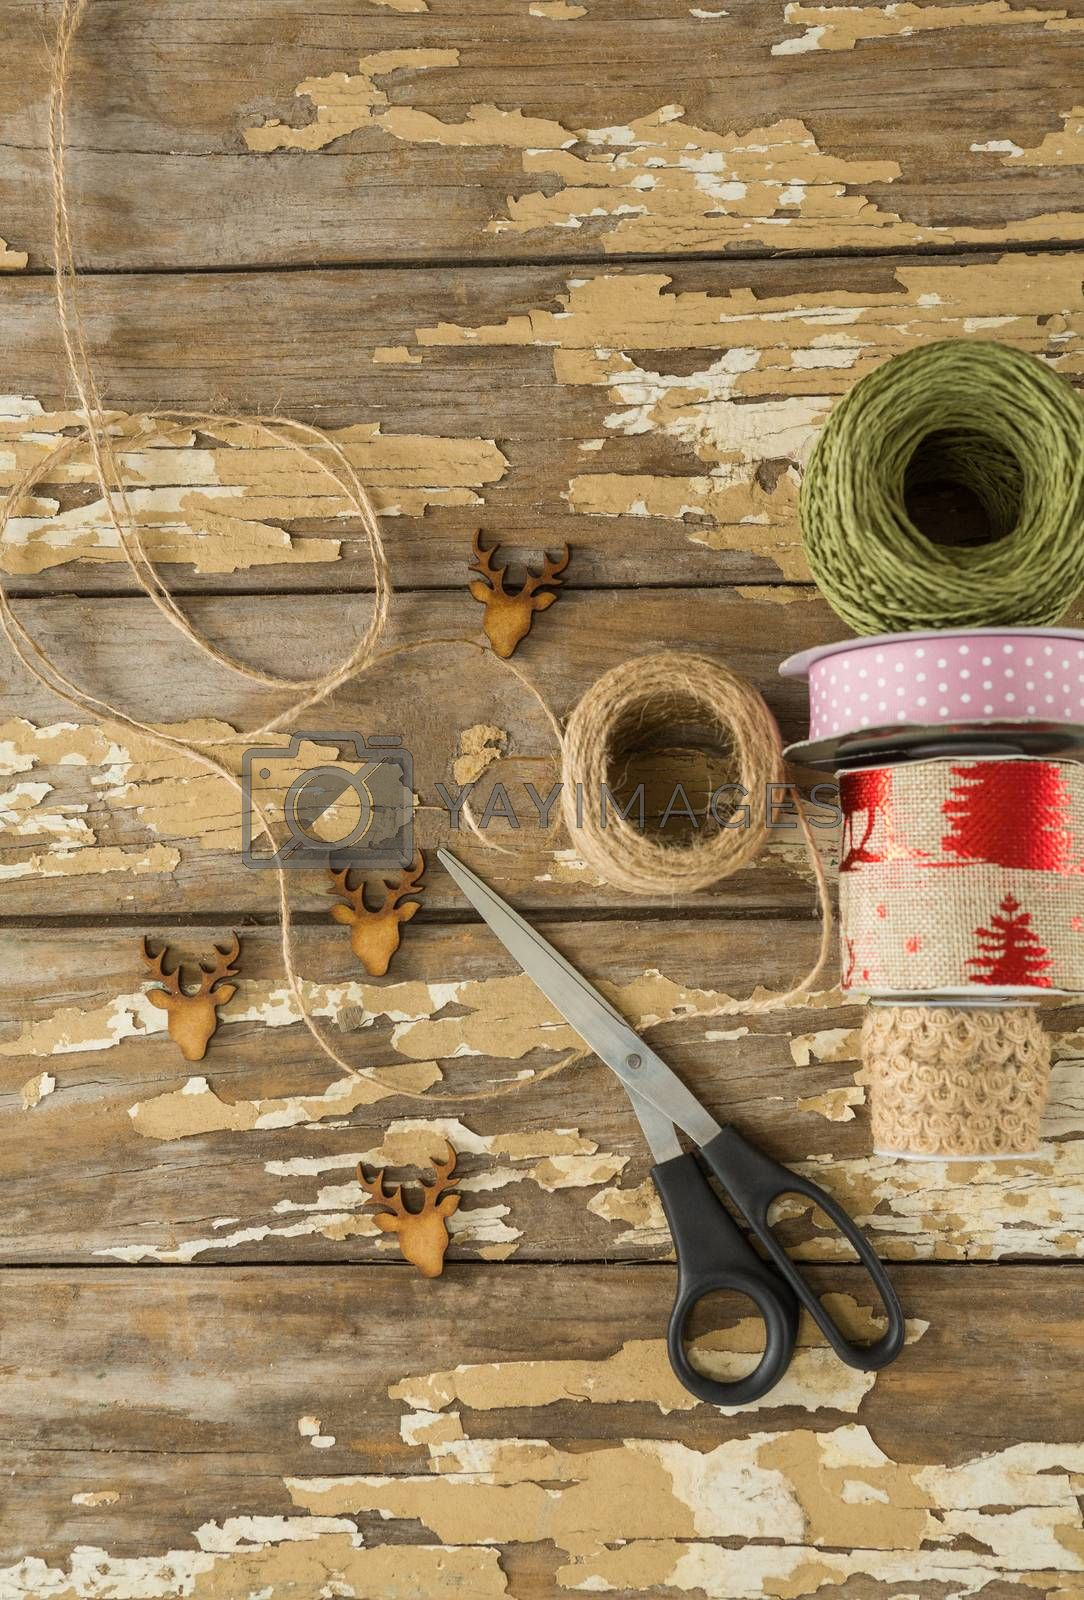 Ribbon roll, scissors and jute rope on wooden table by Wavebreakmedia